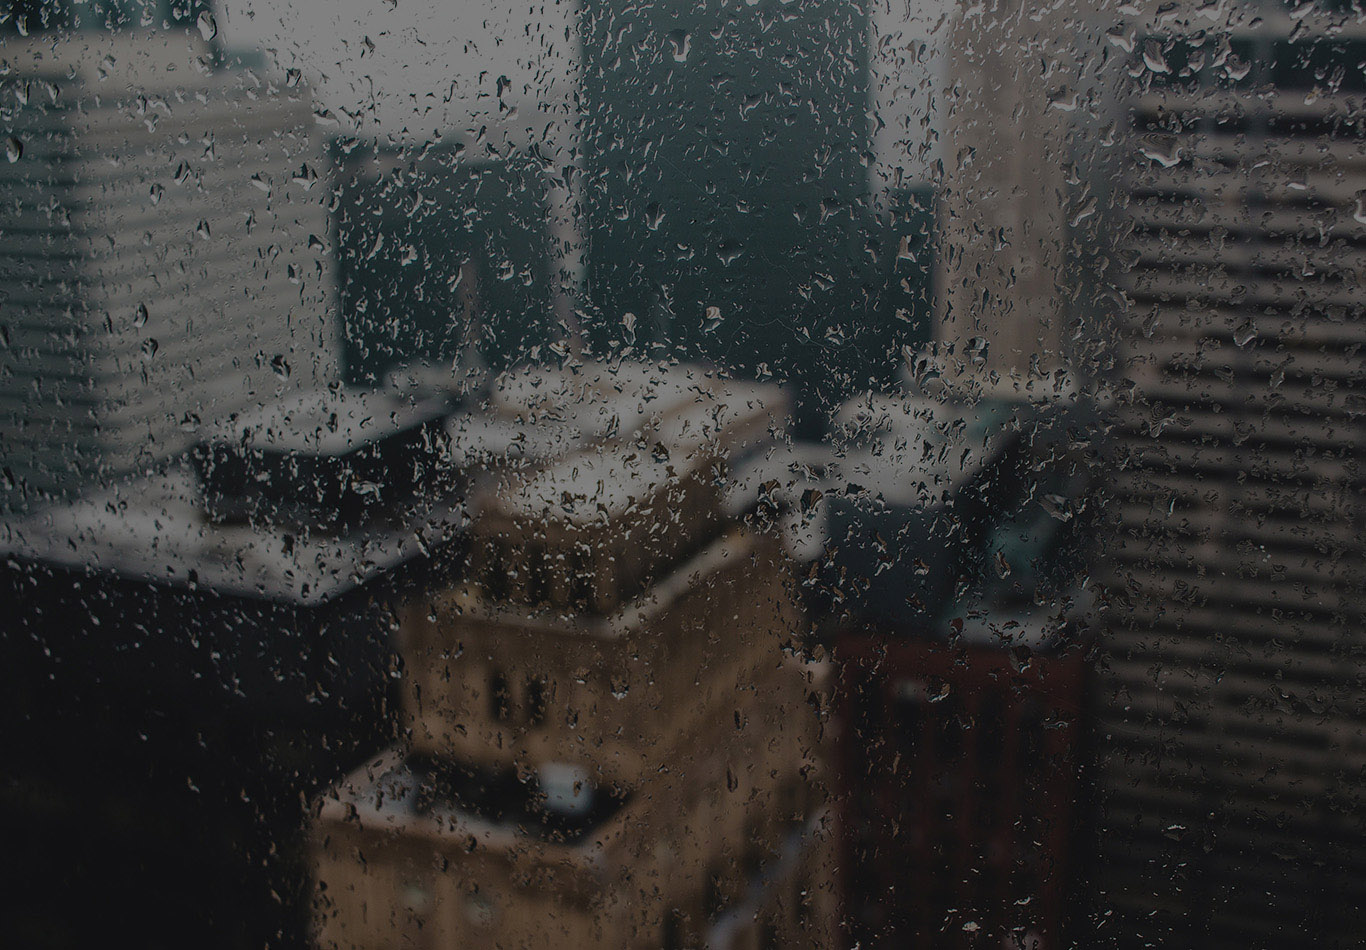 A window with some rain drops on it with some buildings out of focus in the background.